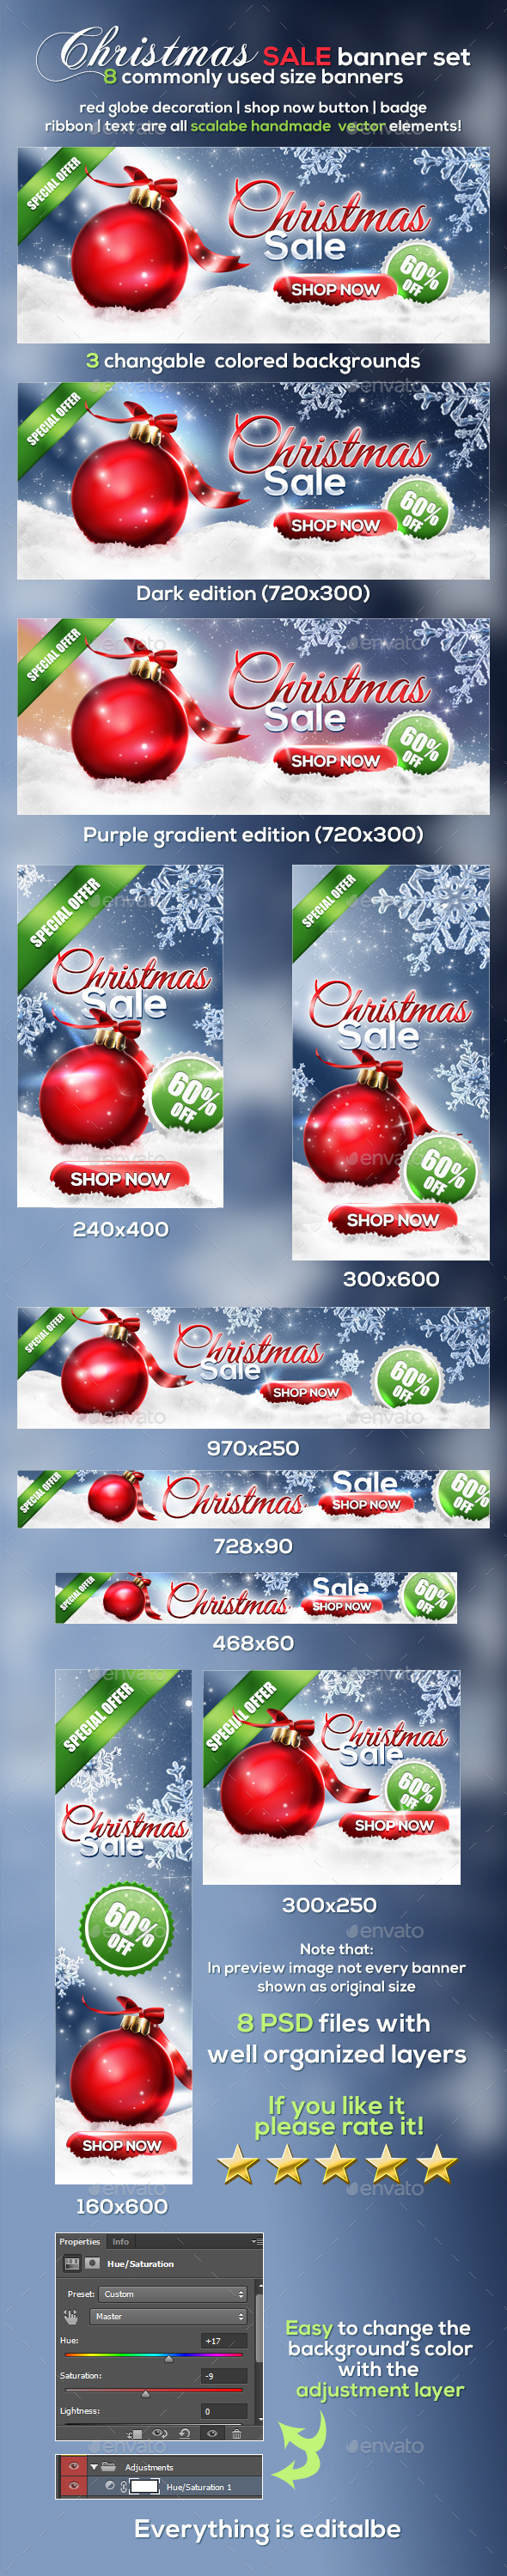 GraphicRiver Christmas Banner Set v2 20954999